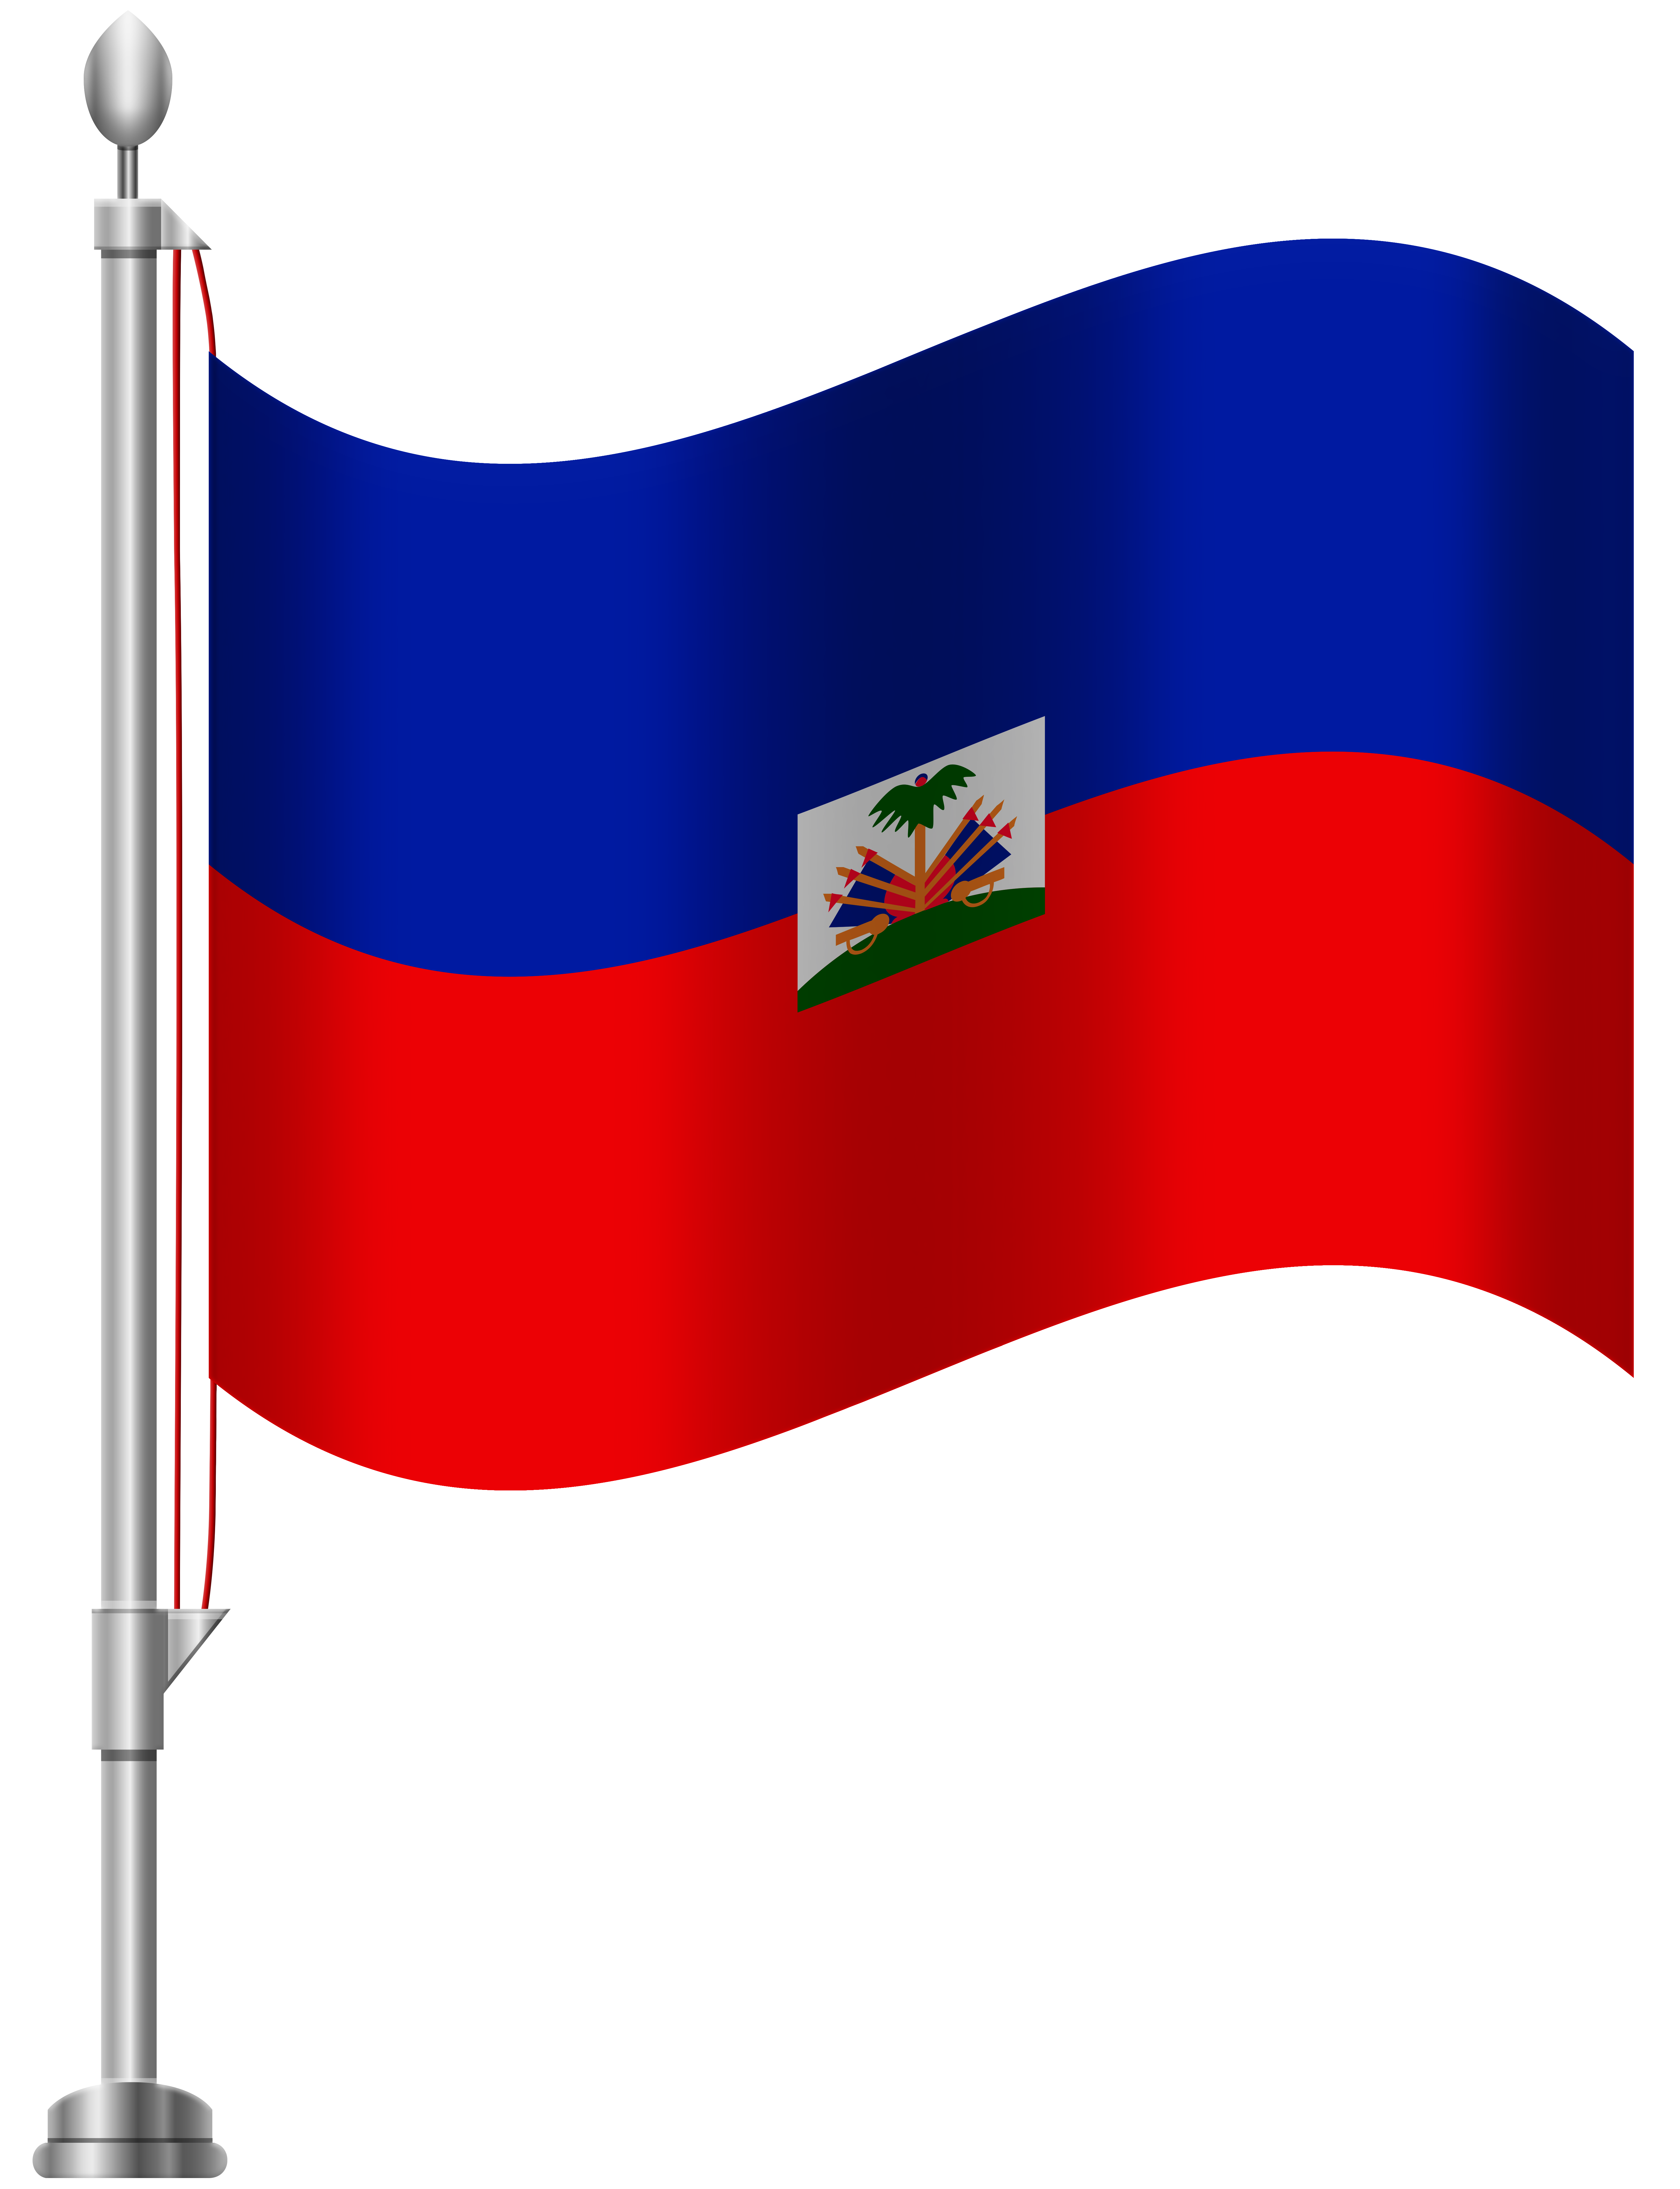 Flag Of Haiti Png & Free Flag Of Haiti.png Transparent Images #30518.